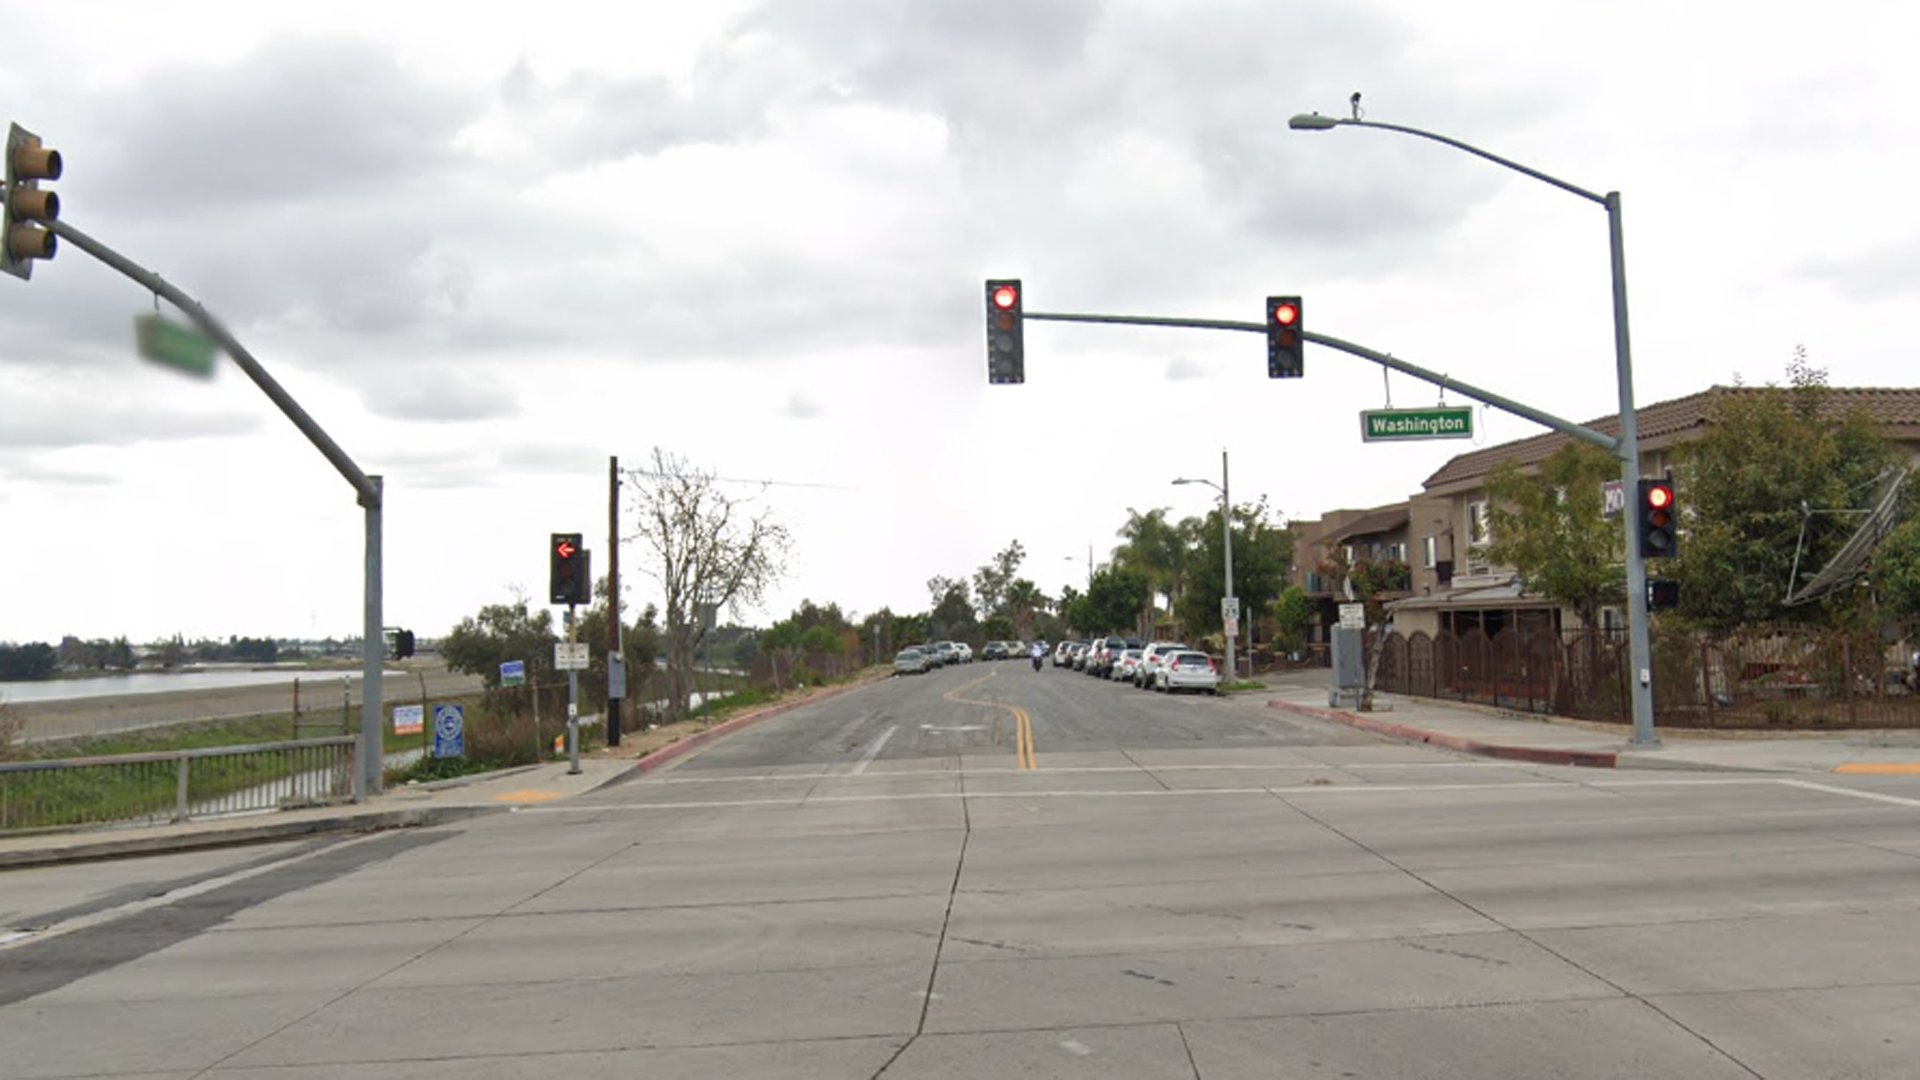 The 1000 block of South Bluff Road in Montebello, as seen in a Google Street View image.